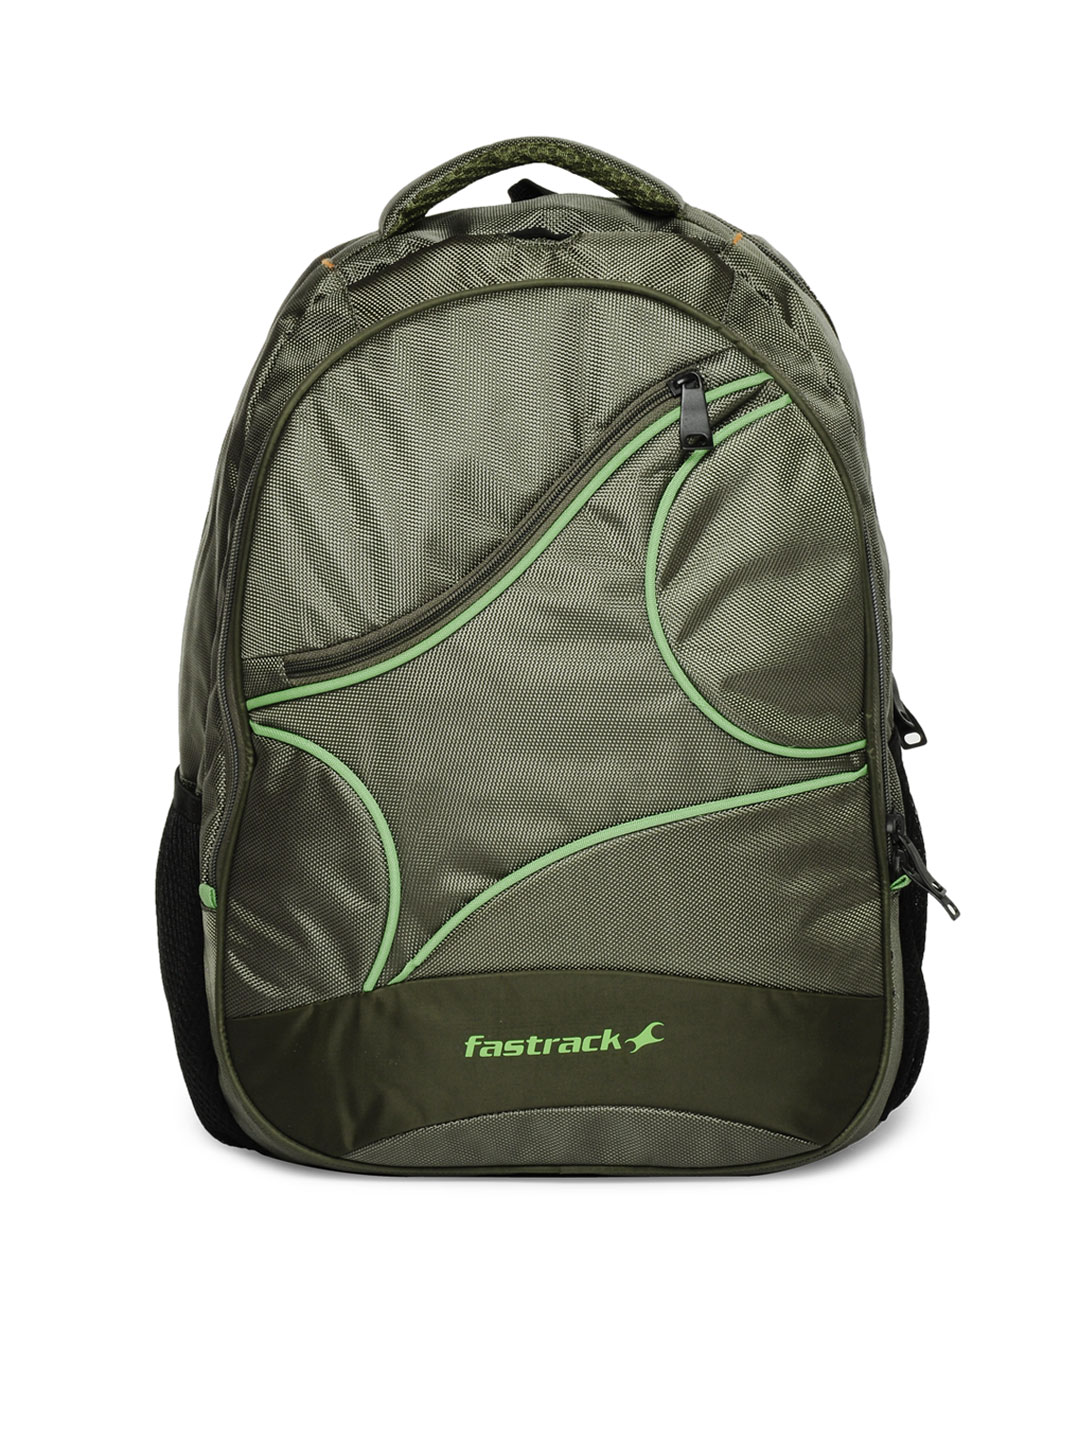 Fastrack Unisex Green Backpack